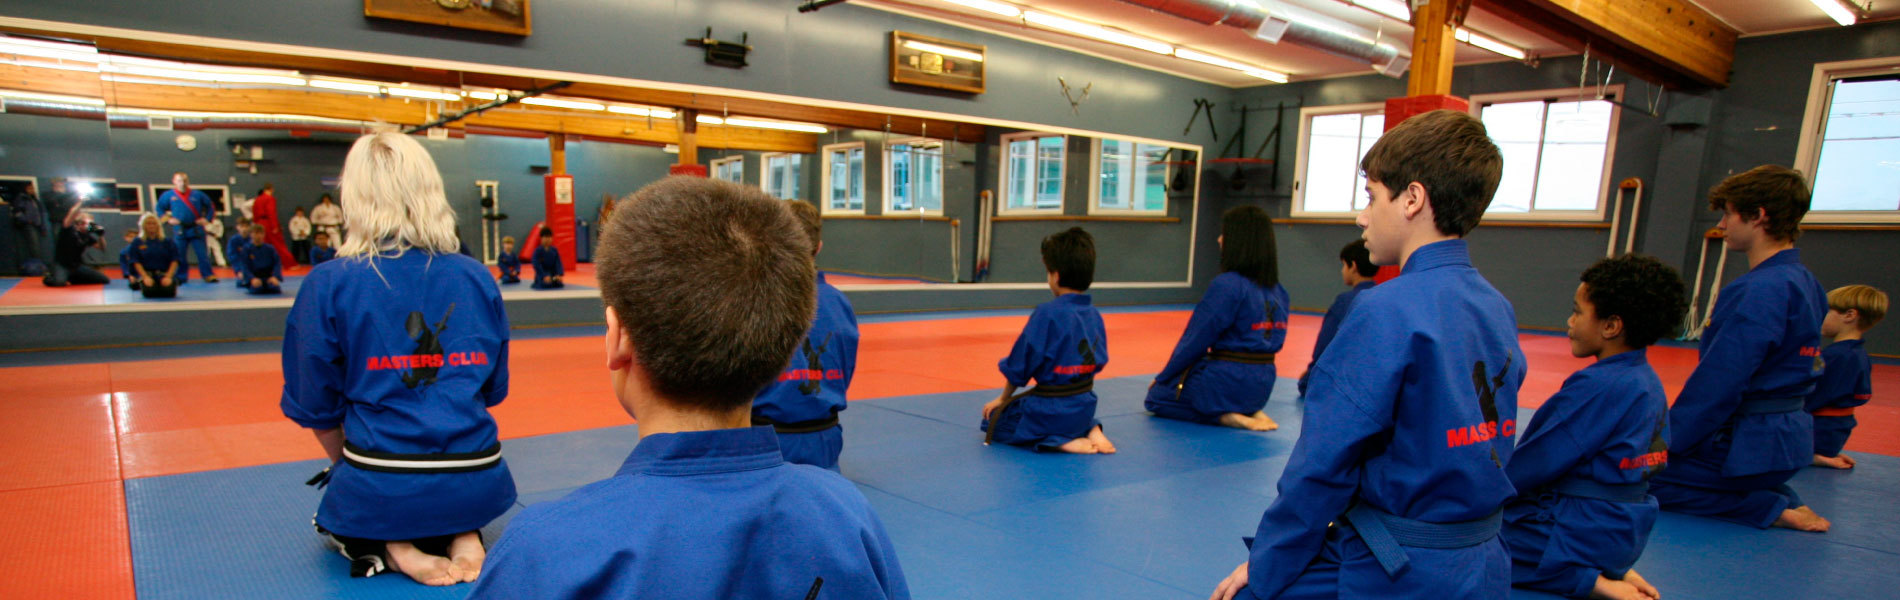 Martial Arts Pricing for Classes: To Discount or Not?